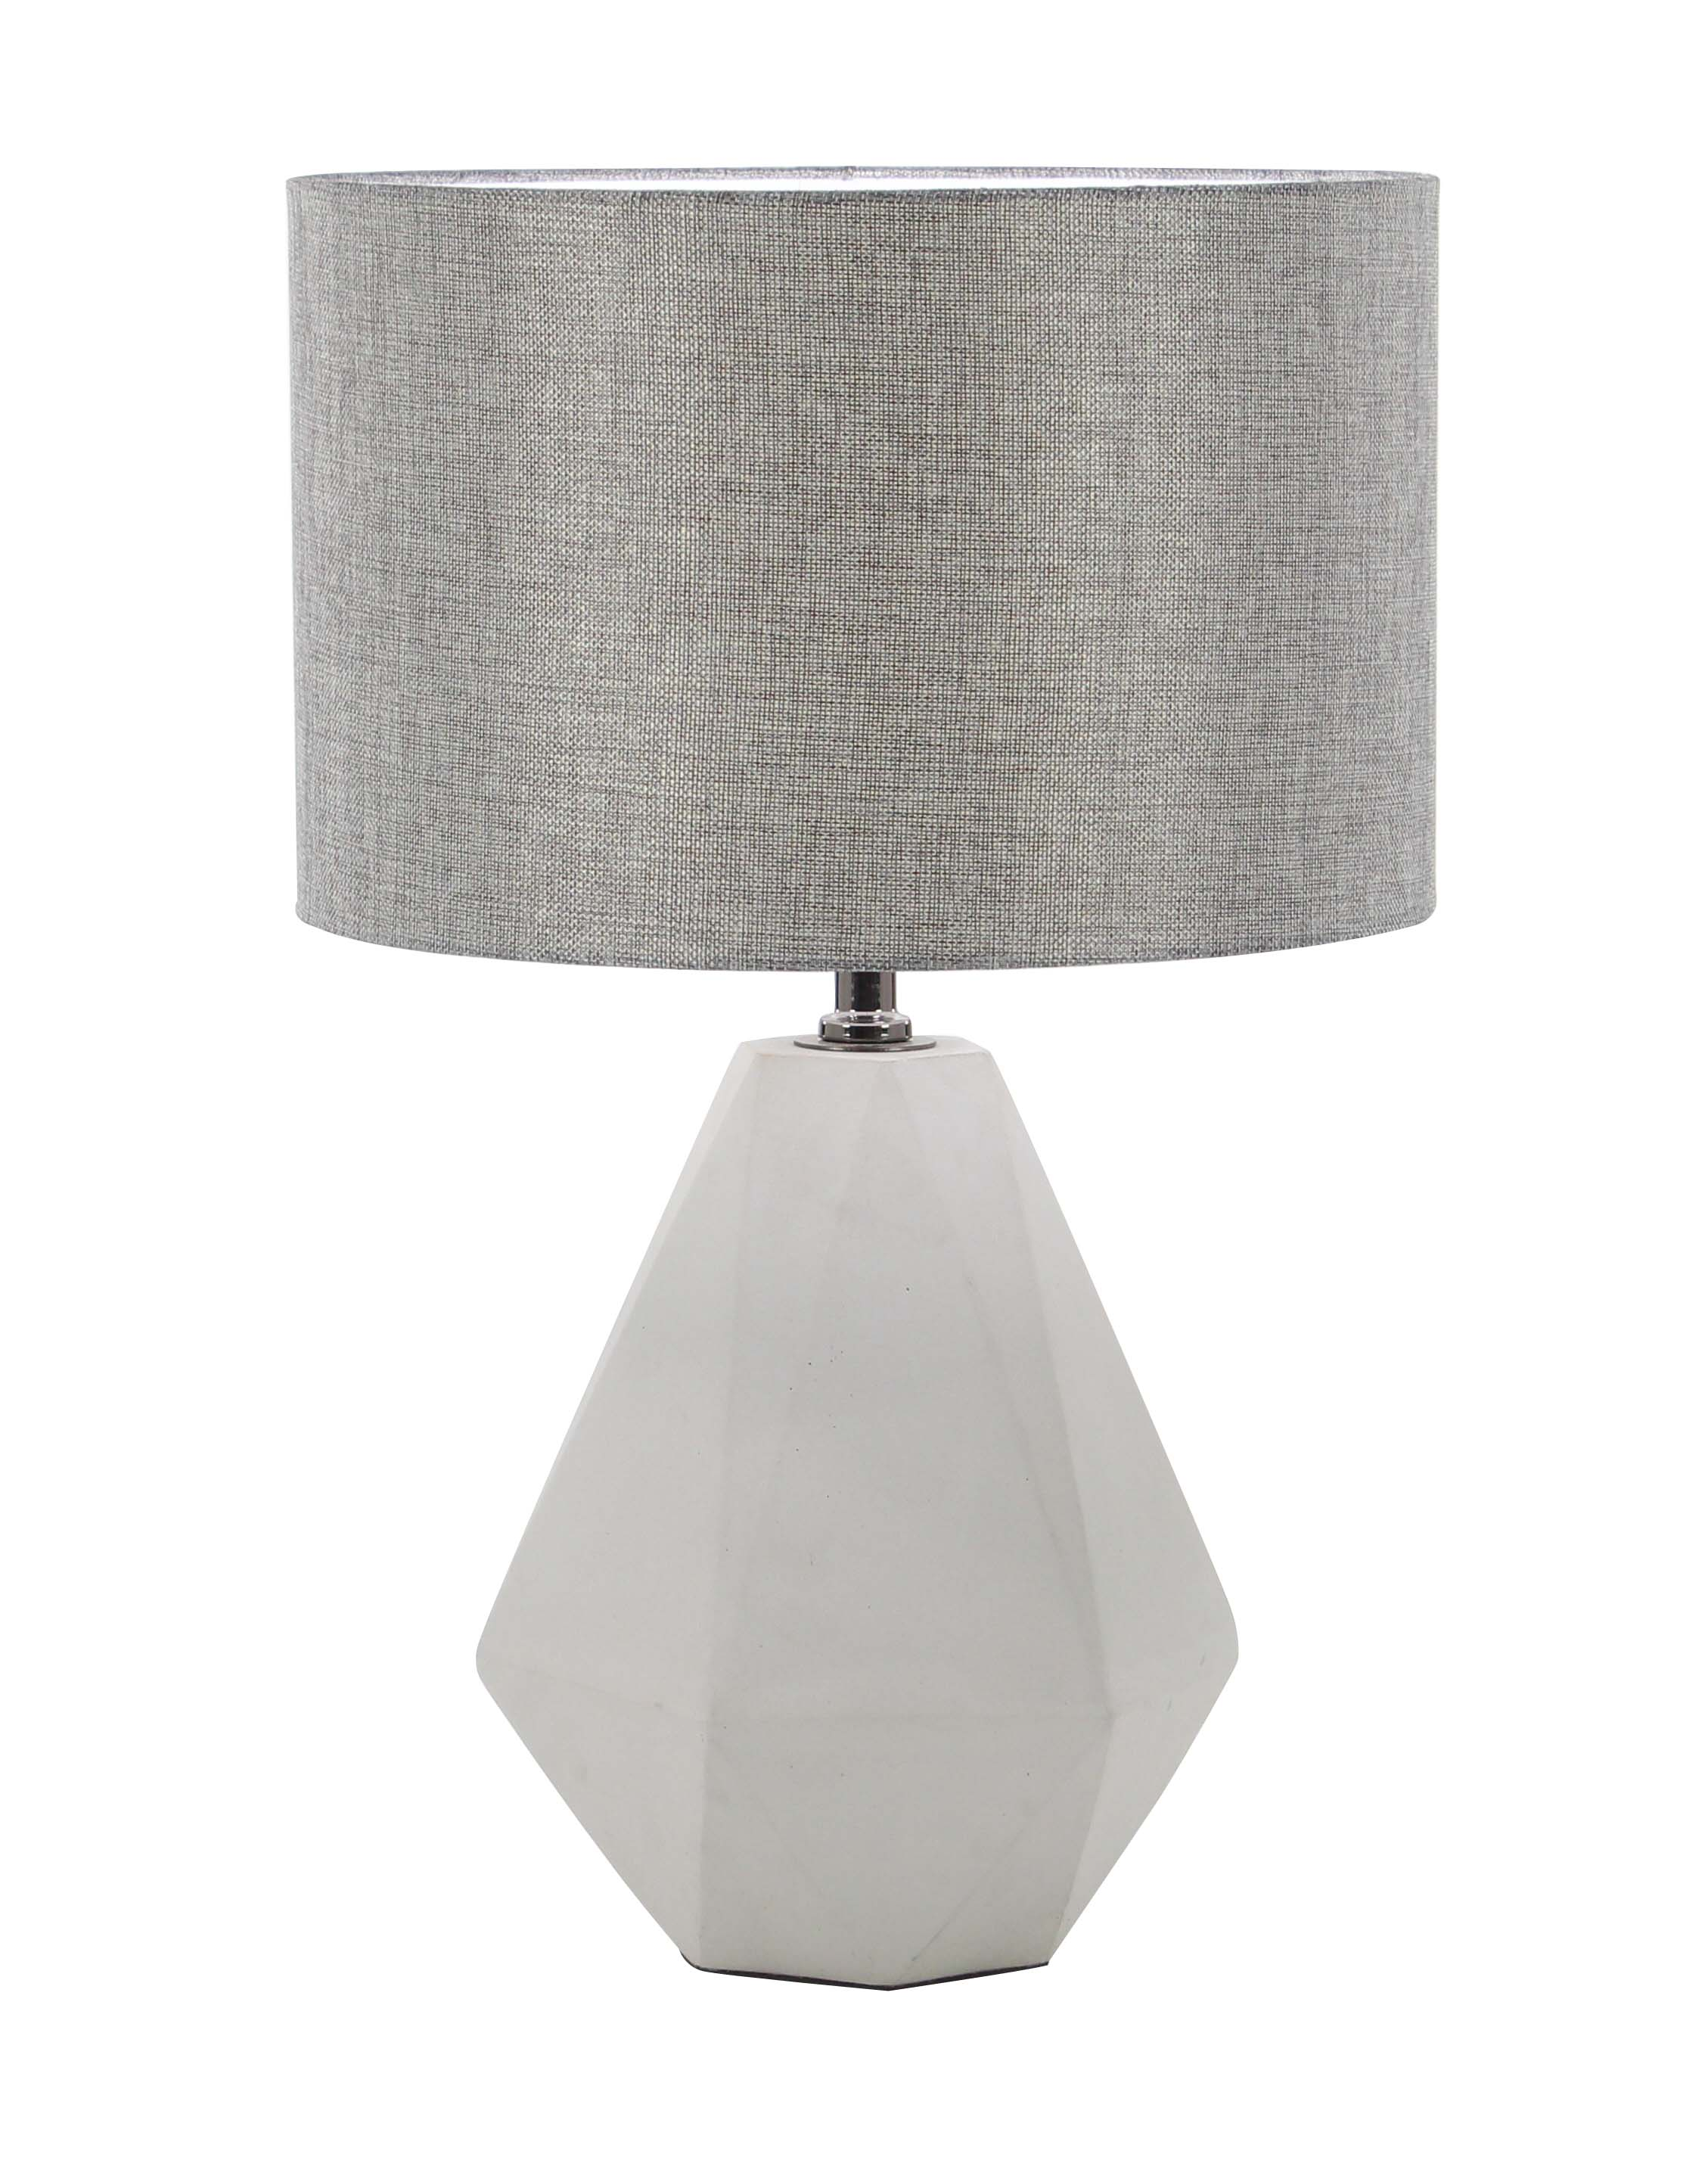 Decmode Modern Concrete and Iron Faceted Pear-Shaped Gray Table Lamp, Light Gray by DecMode